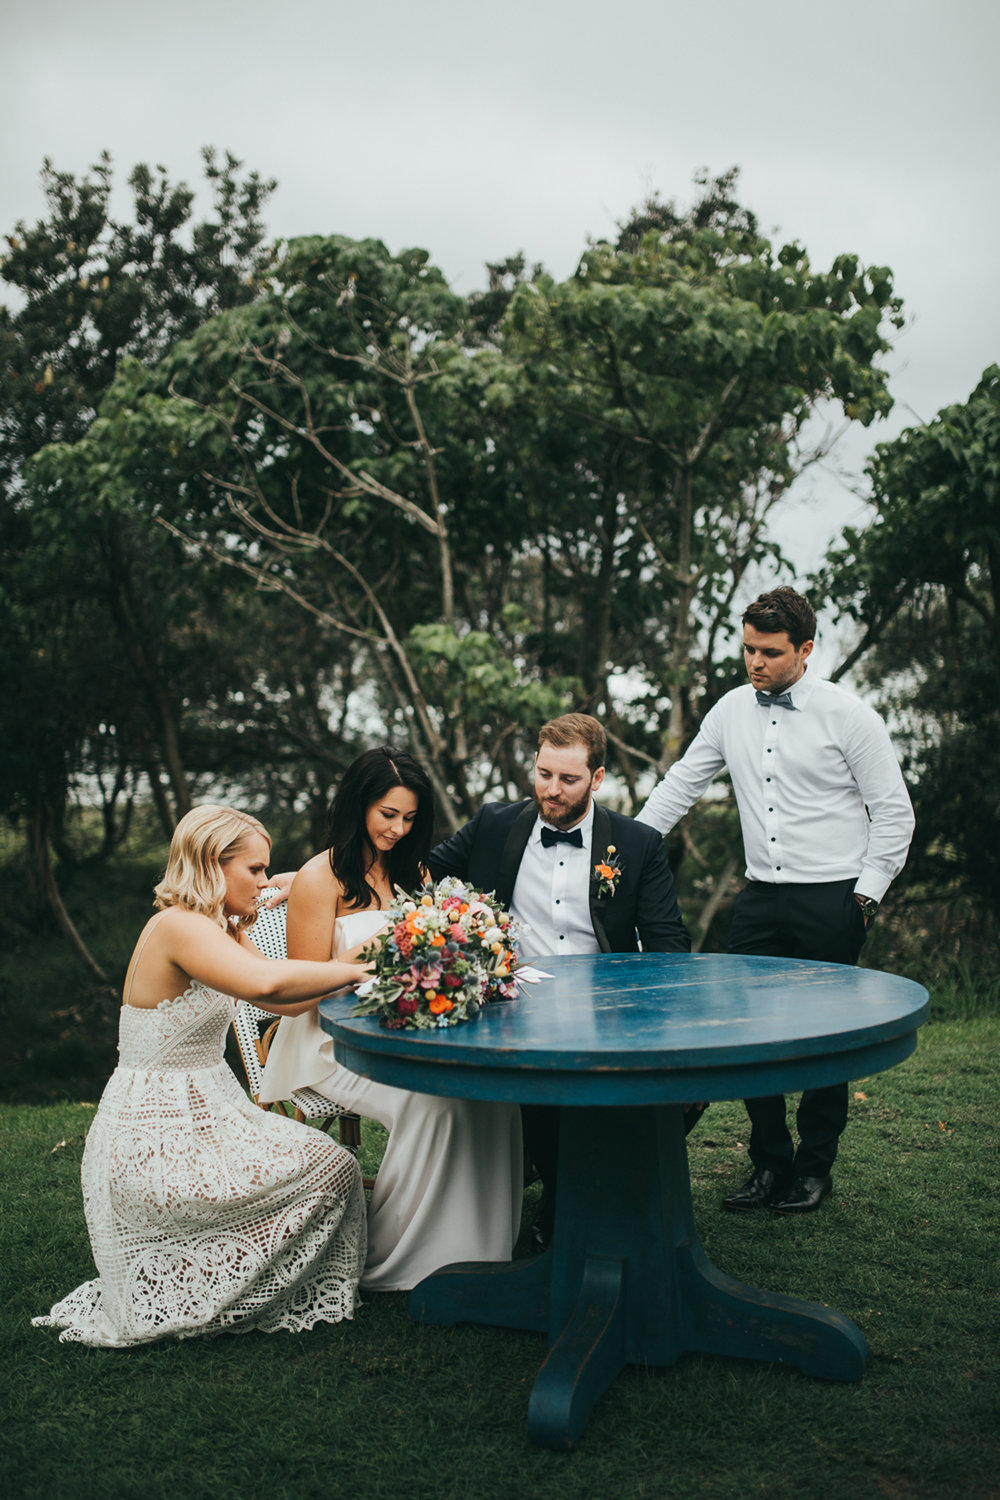 067-halcyon_house_byron_bay_wedding_photographer.jpg